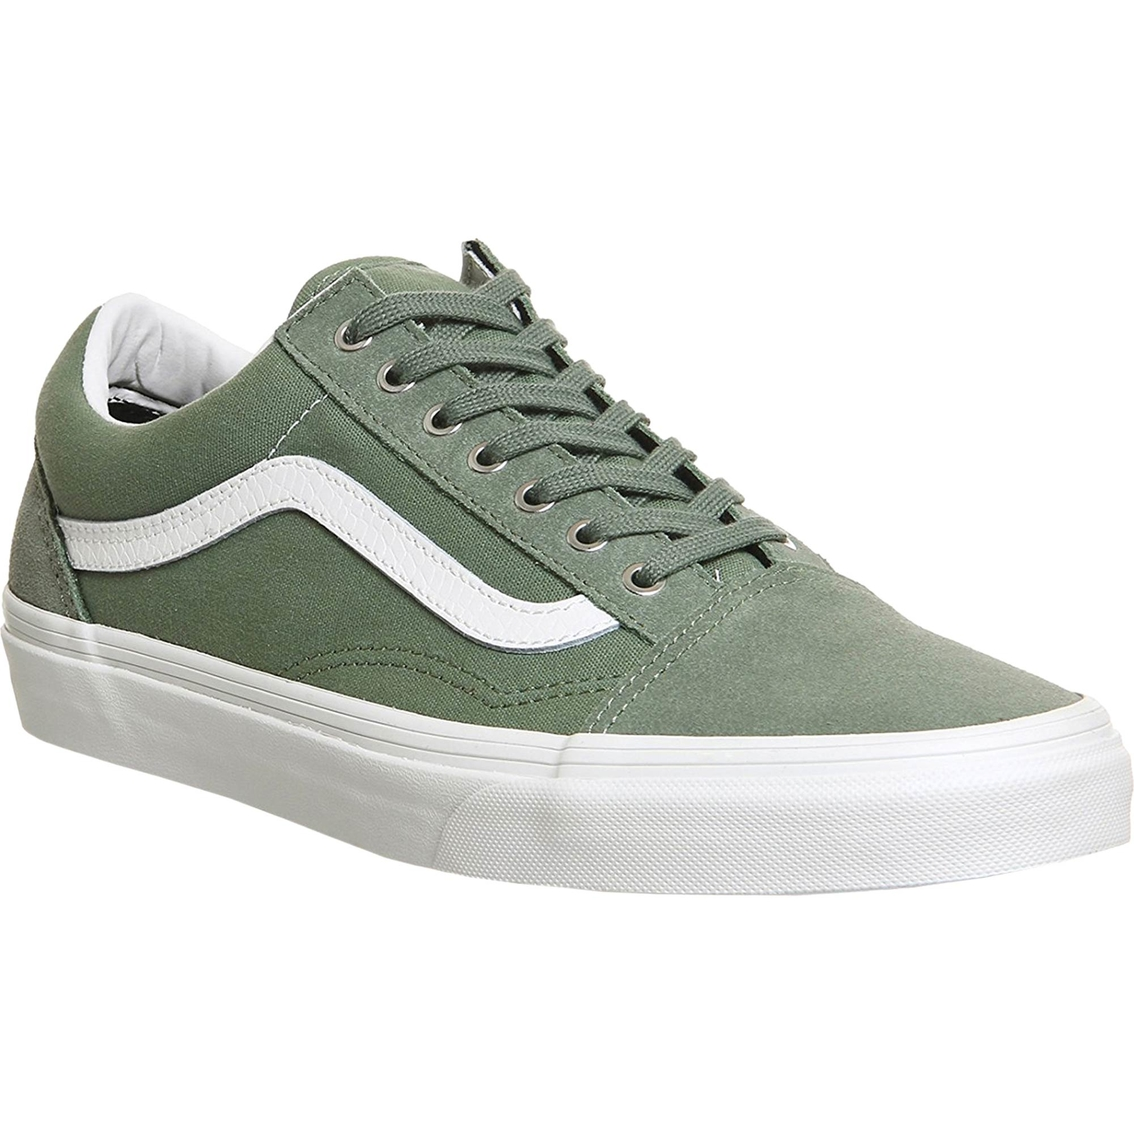 8d53f825ef9de4 Vans Old Skool Snake Lifestyle Shoes